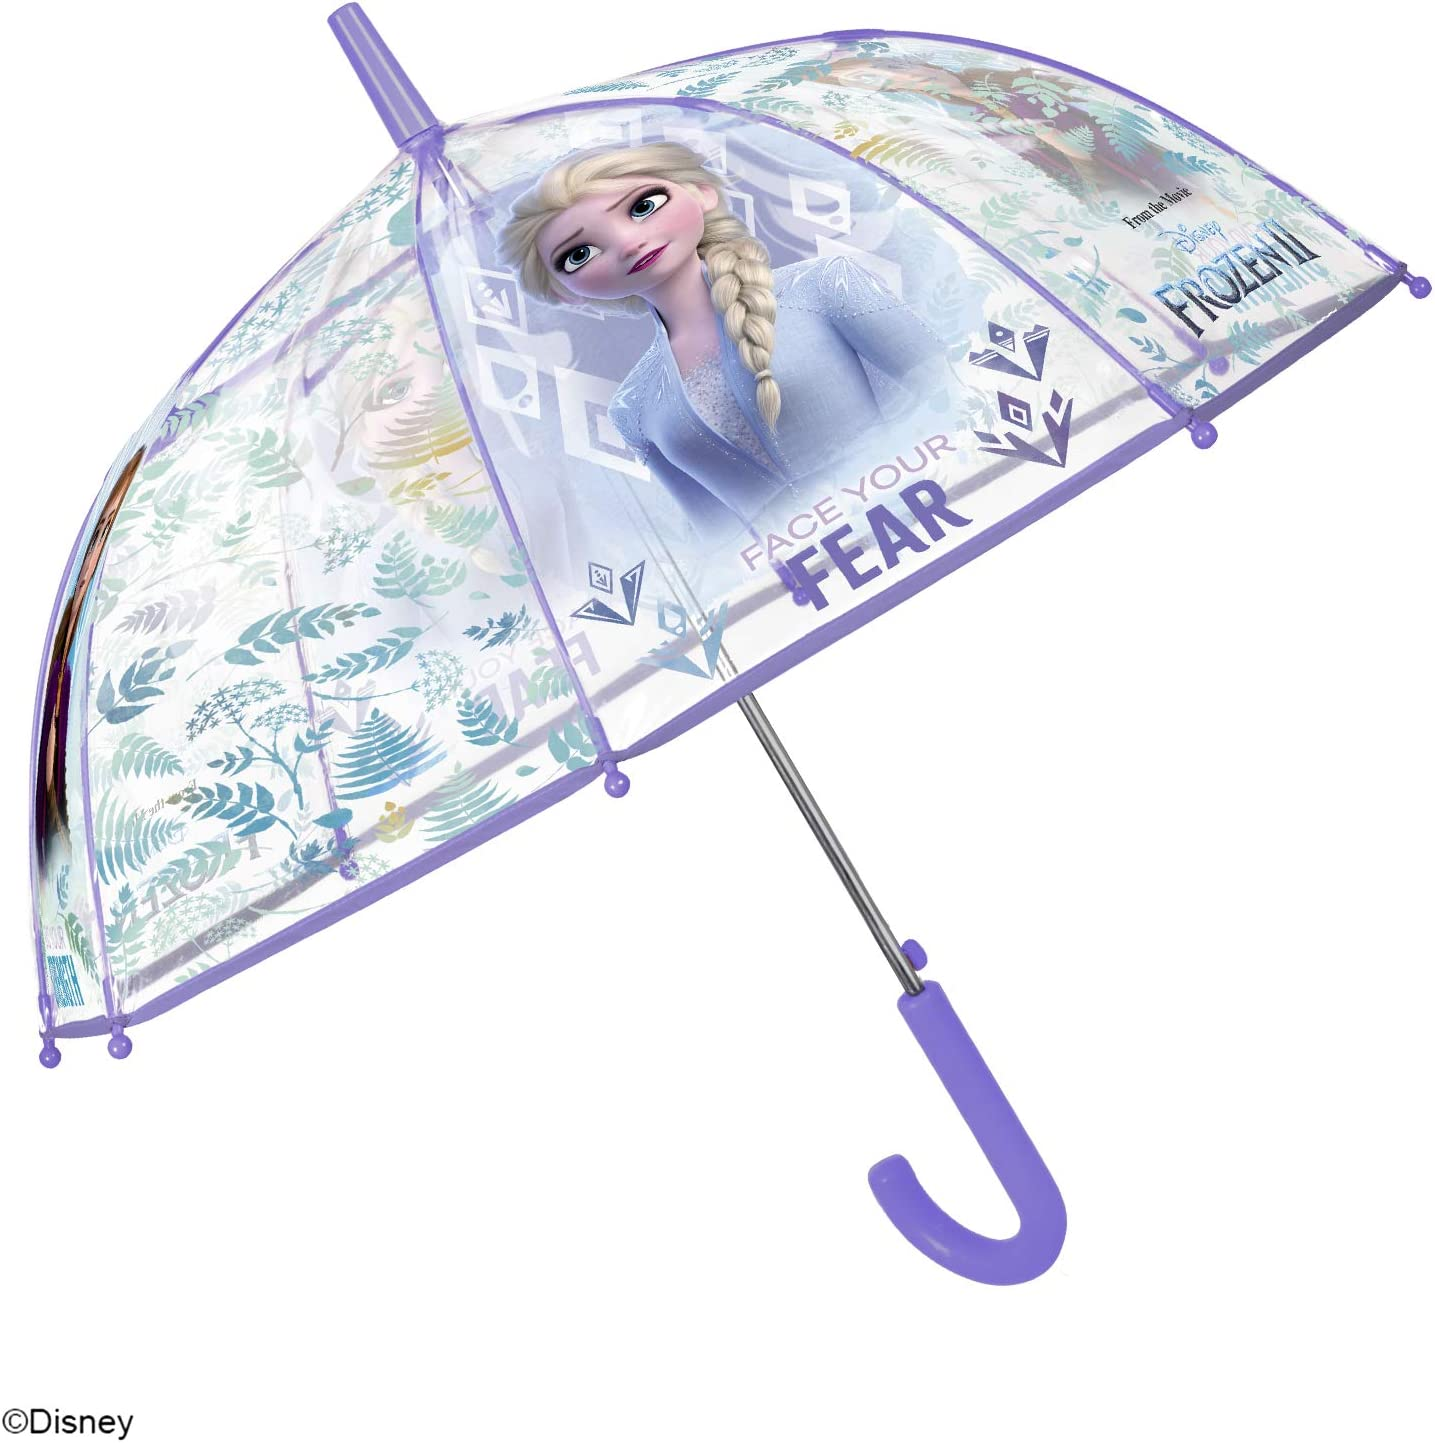 Disney Elsa Stick Umbrella for Children Windproof and Resistant Dome Brolly Frozen 2 Transparent Kids Umbrella Aged 4//6 Years Perletti Kids Automatic Opening Diameter 74 cm POE